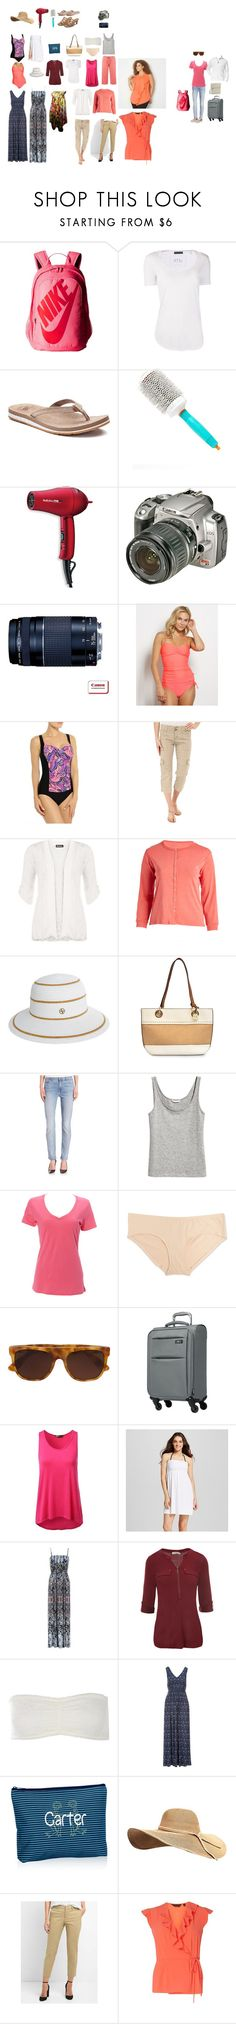 """""""Vegas September 2017 packing list"""" by donovan-heather on Polyvore featuring NIKE, ATM by Anthony Thomas Melillo, New Balance, Moroccanoil, BaByliss Pro, Sanctuary, WearAll, Jenny, Adrienne Vittadini and Nicole Miller"""